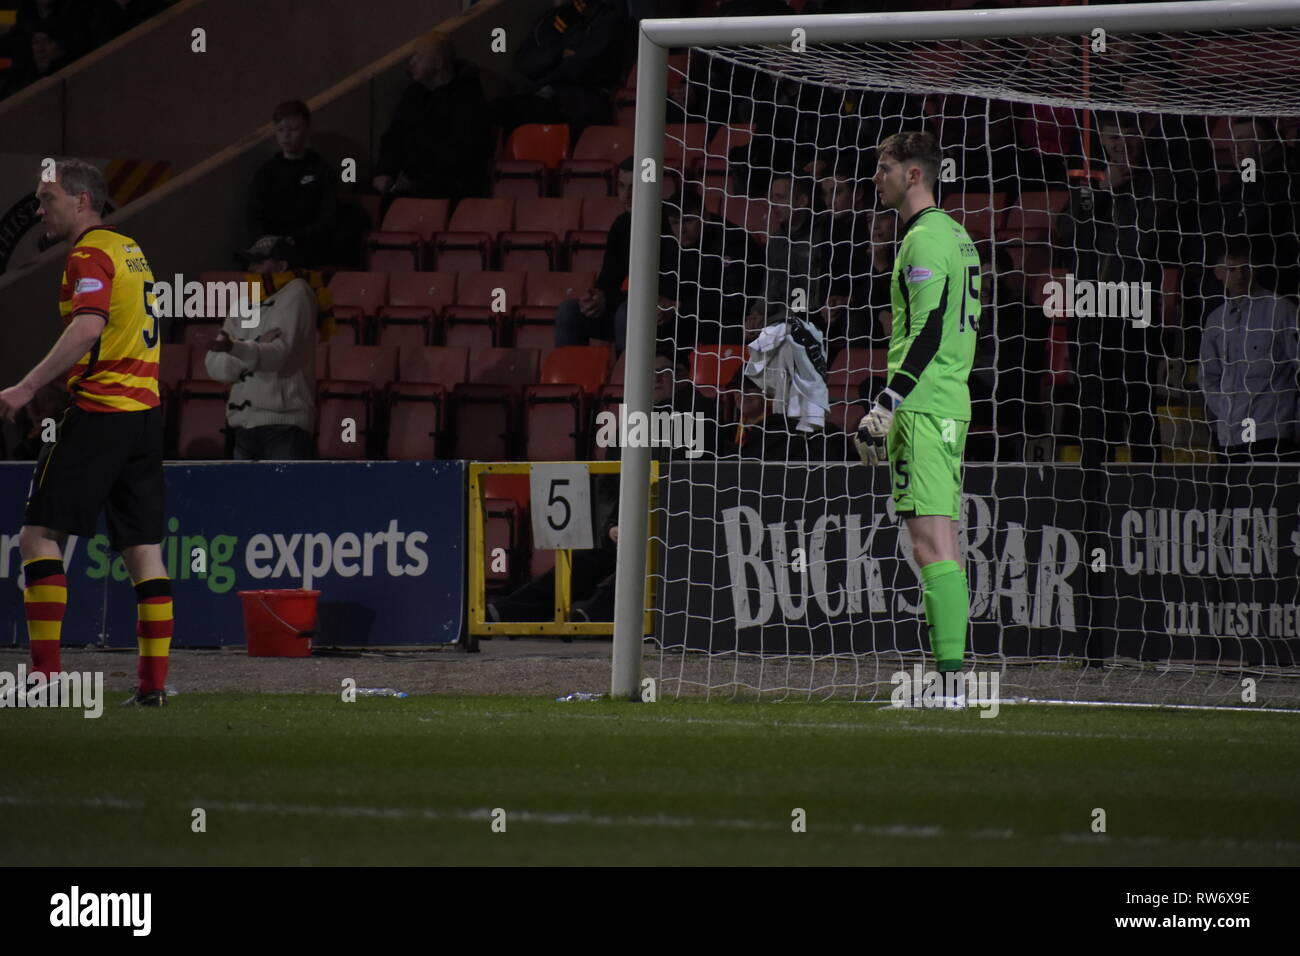 firhill, Maryhill, Glasgow, Scotland 4th march 2019 Partick Thistles no 1 takes charge of box Credit: Thomas Porter/Alamy News - Stock Image